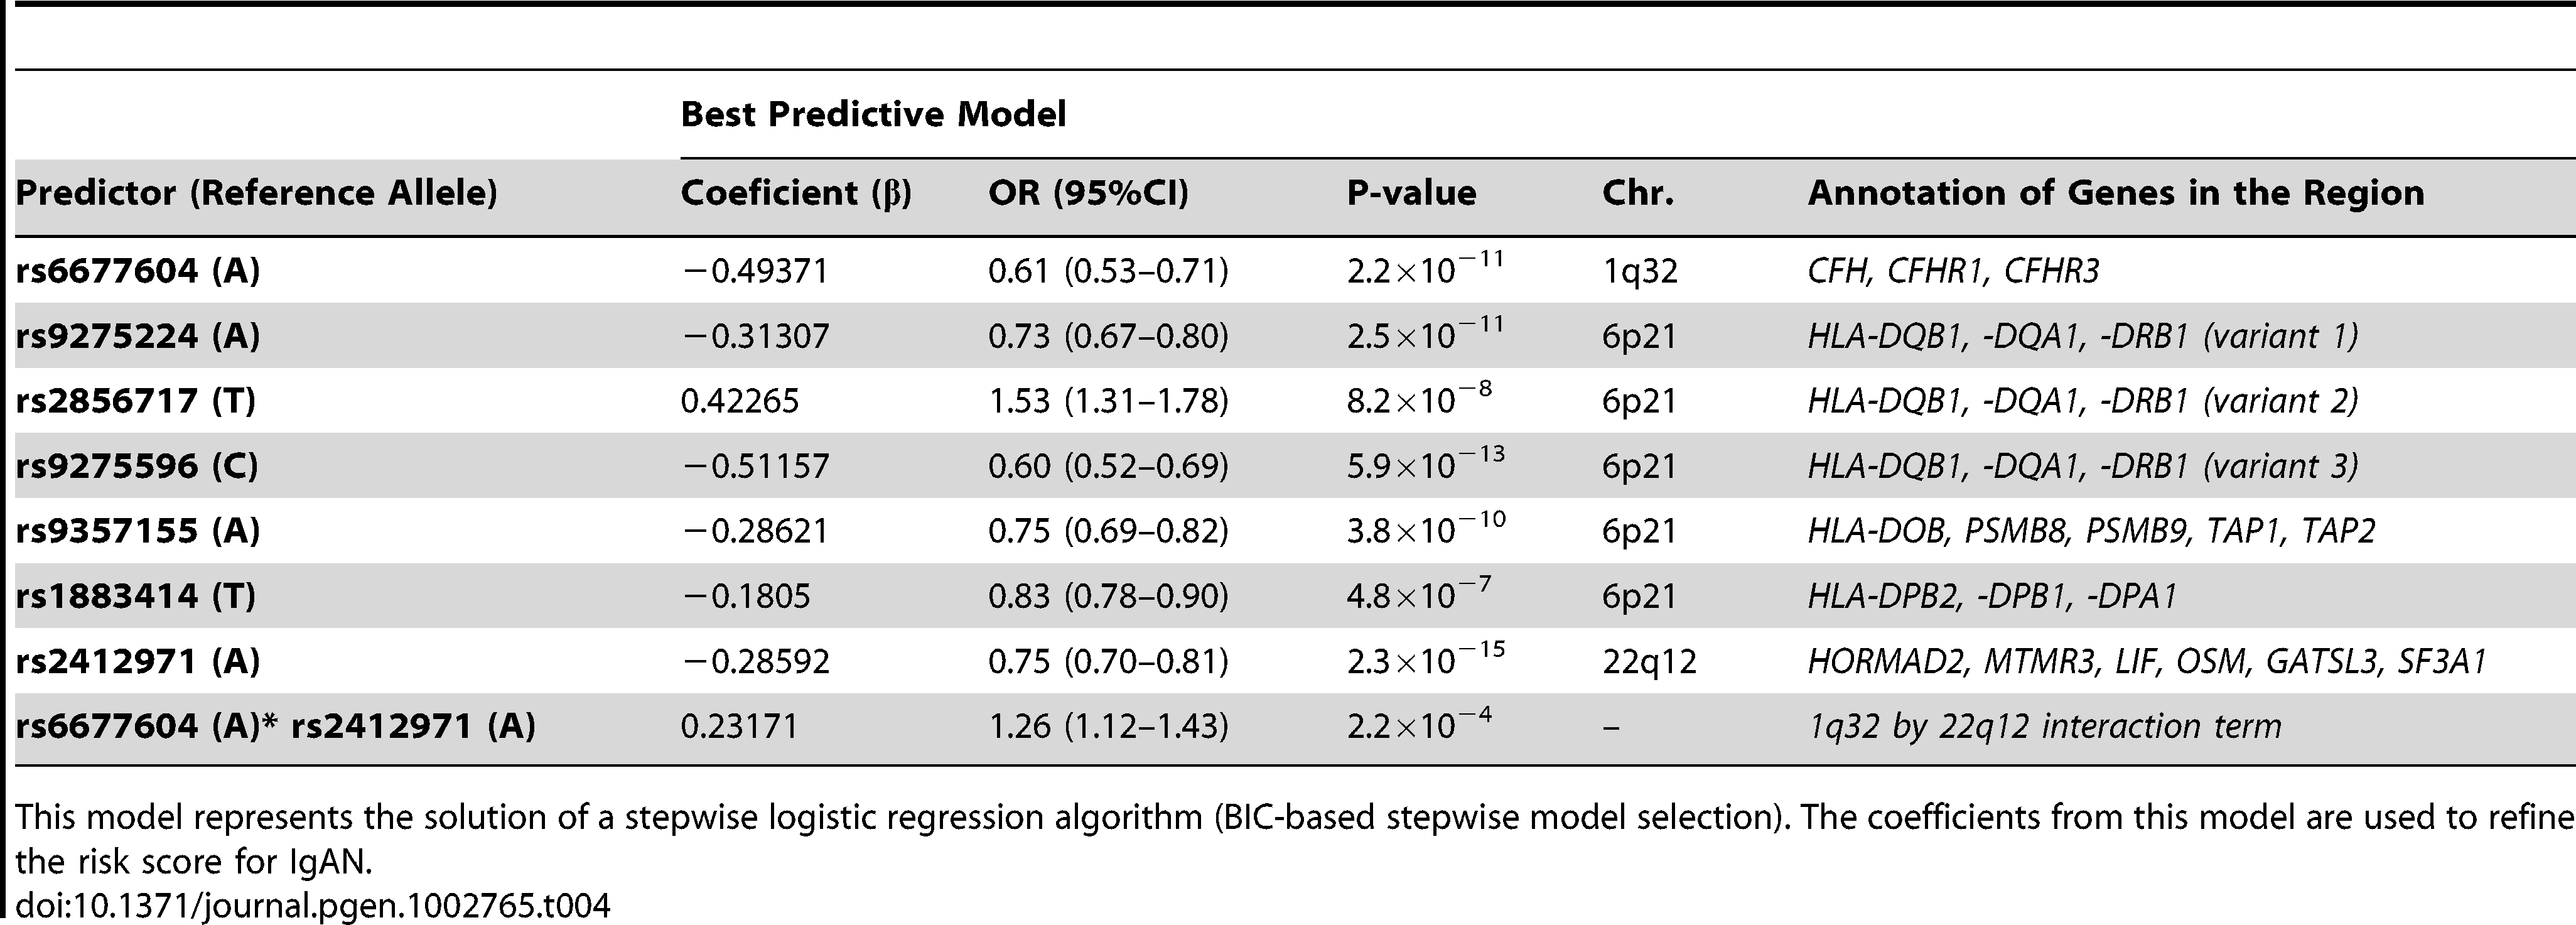 The best predictive model for IgAN based on all the genotyped SNPs and their pairwise interaction terms.